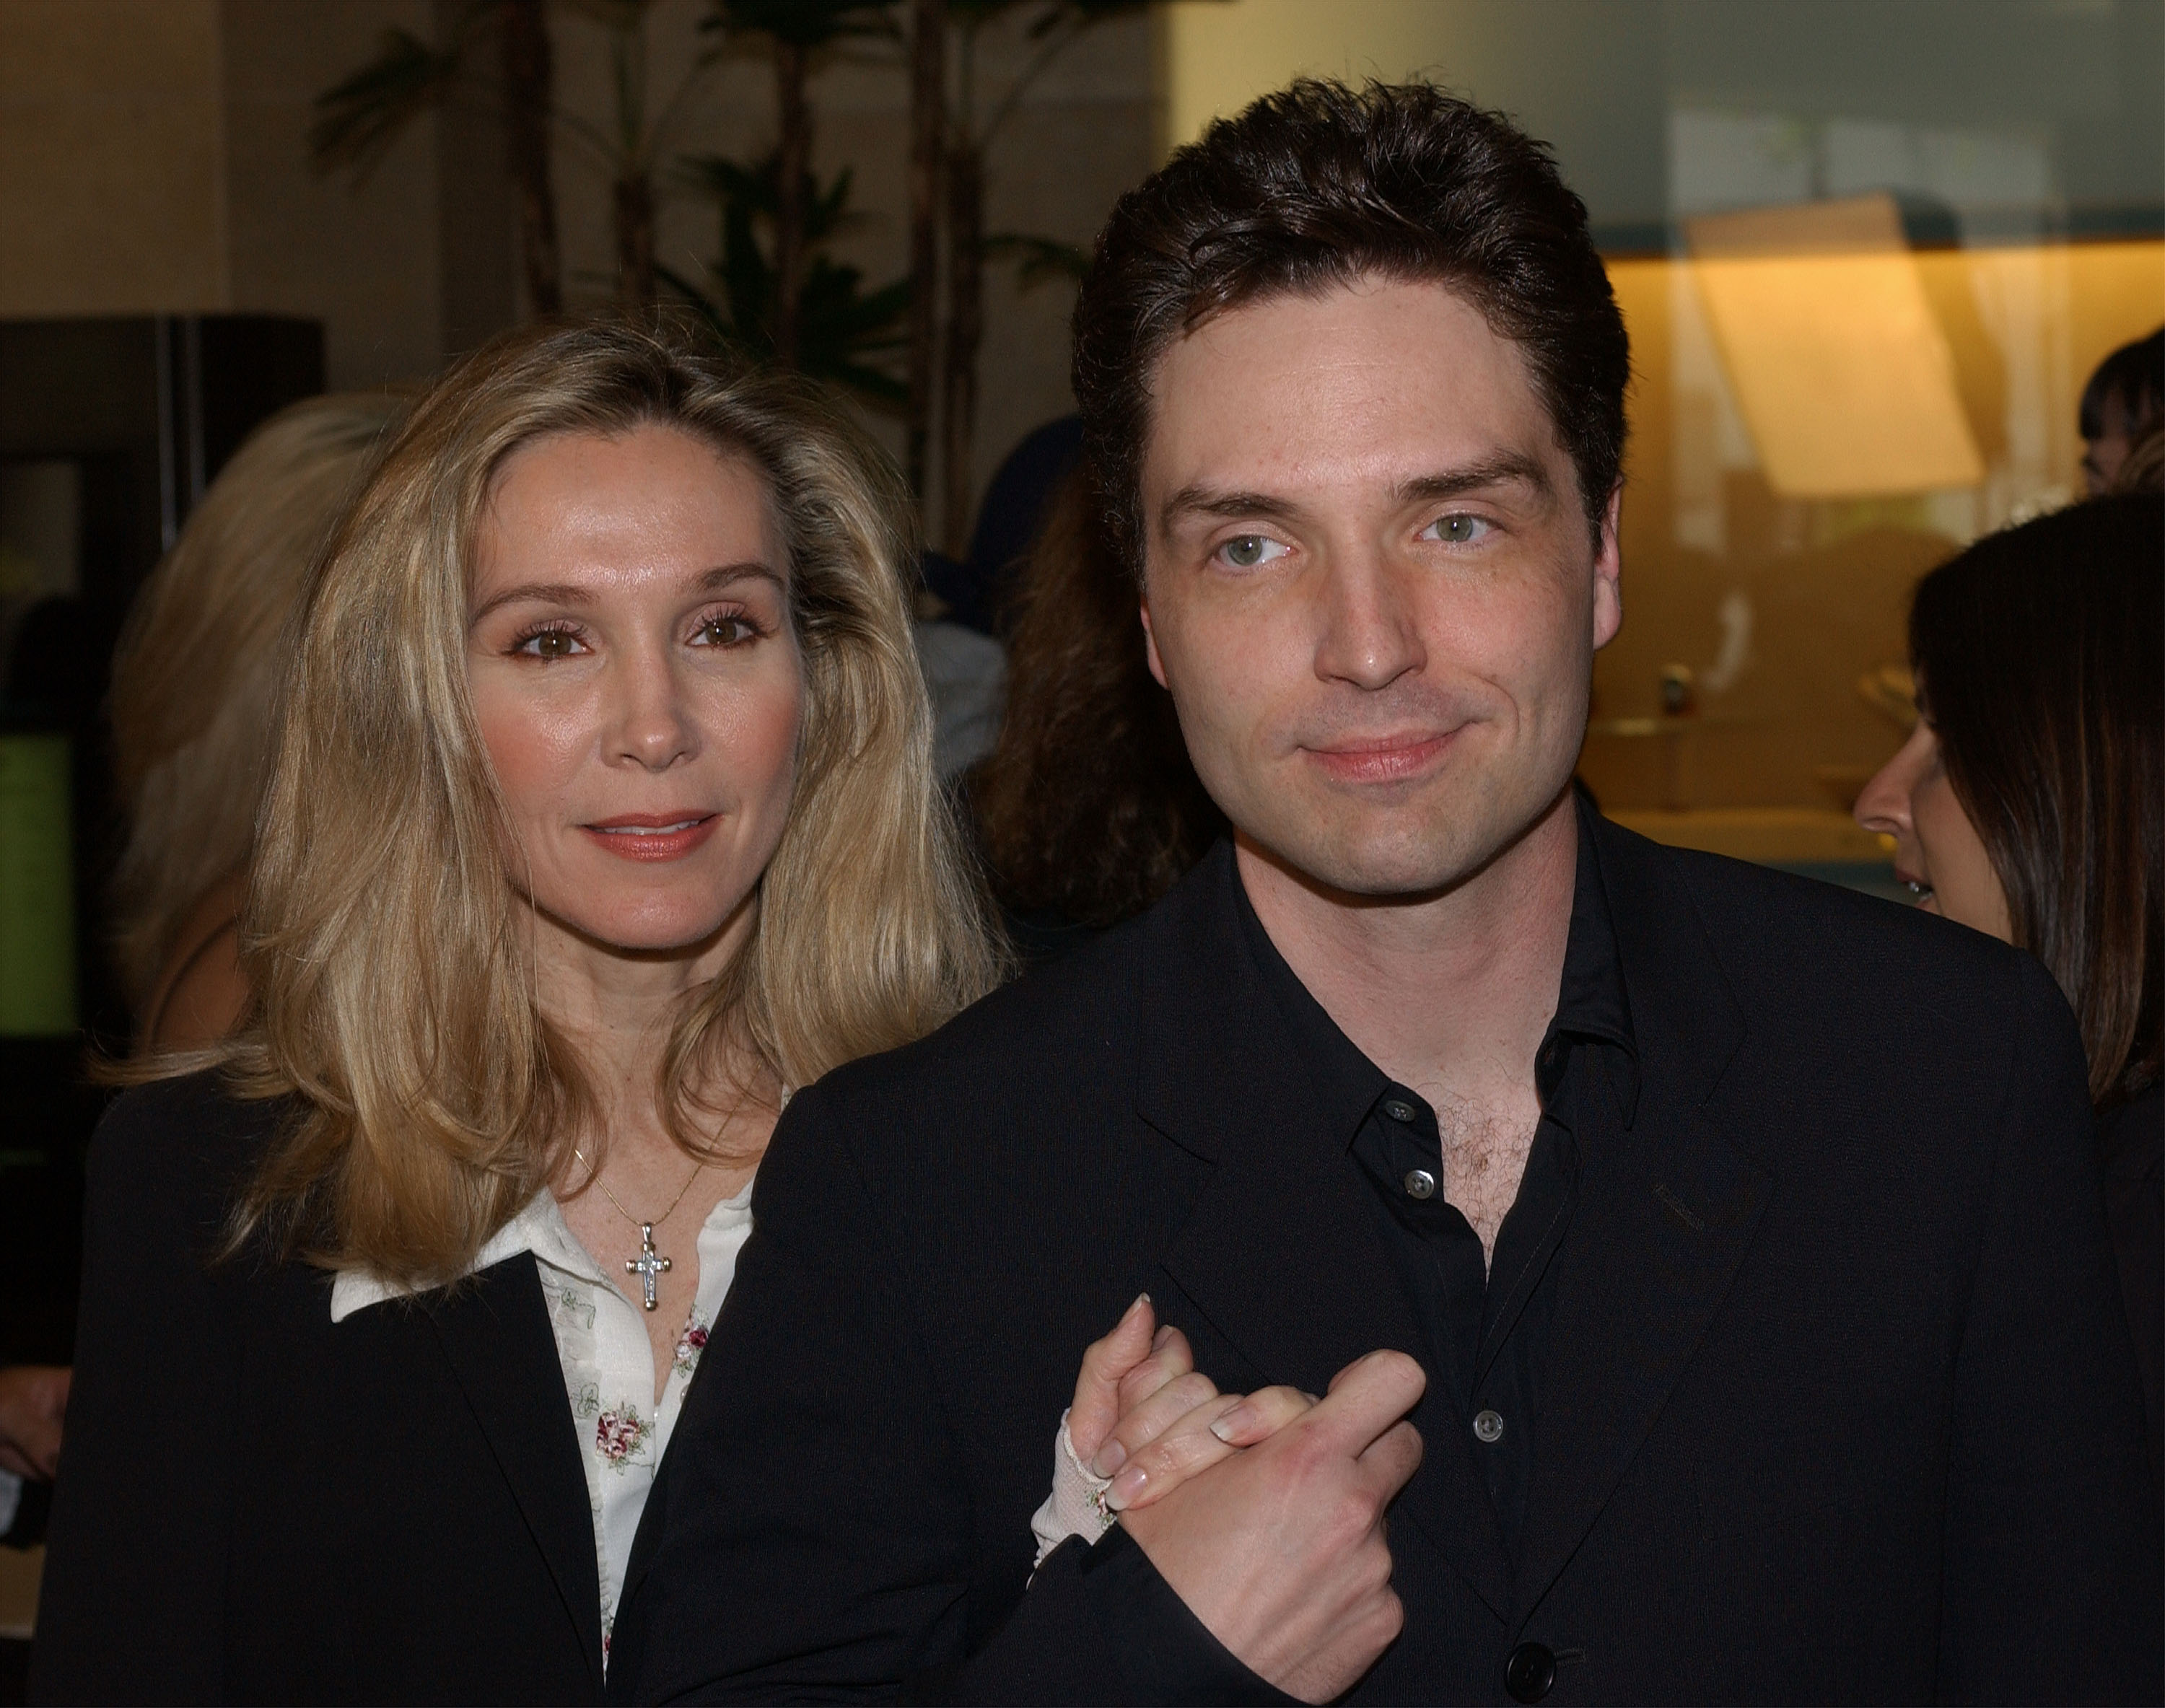 Cynthia Rhodes, left, and Richard Marx in 2002 (Photo: Vince Bucci/Getty Images)